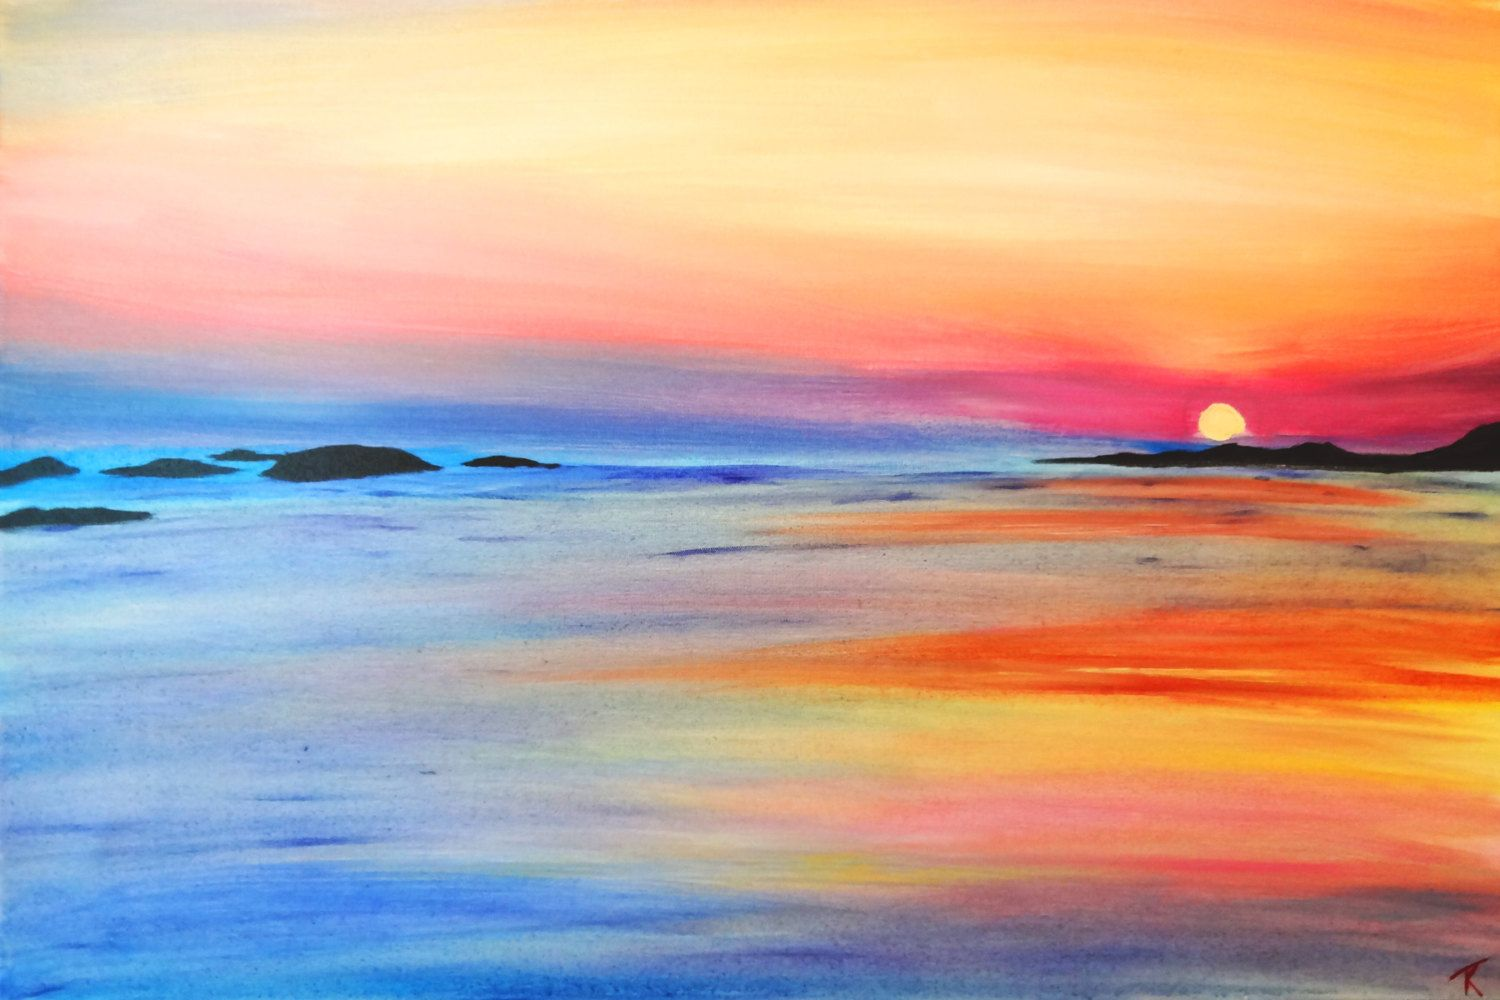 How To Paint Sunrise And Sunset Request A Custom Order And Have